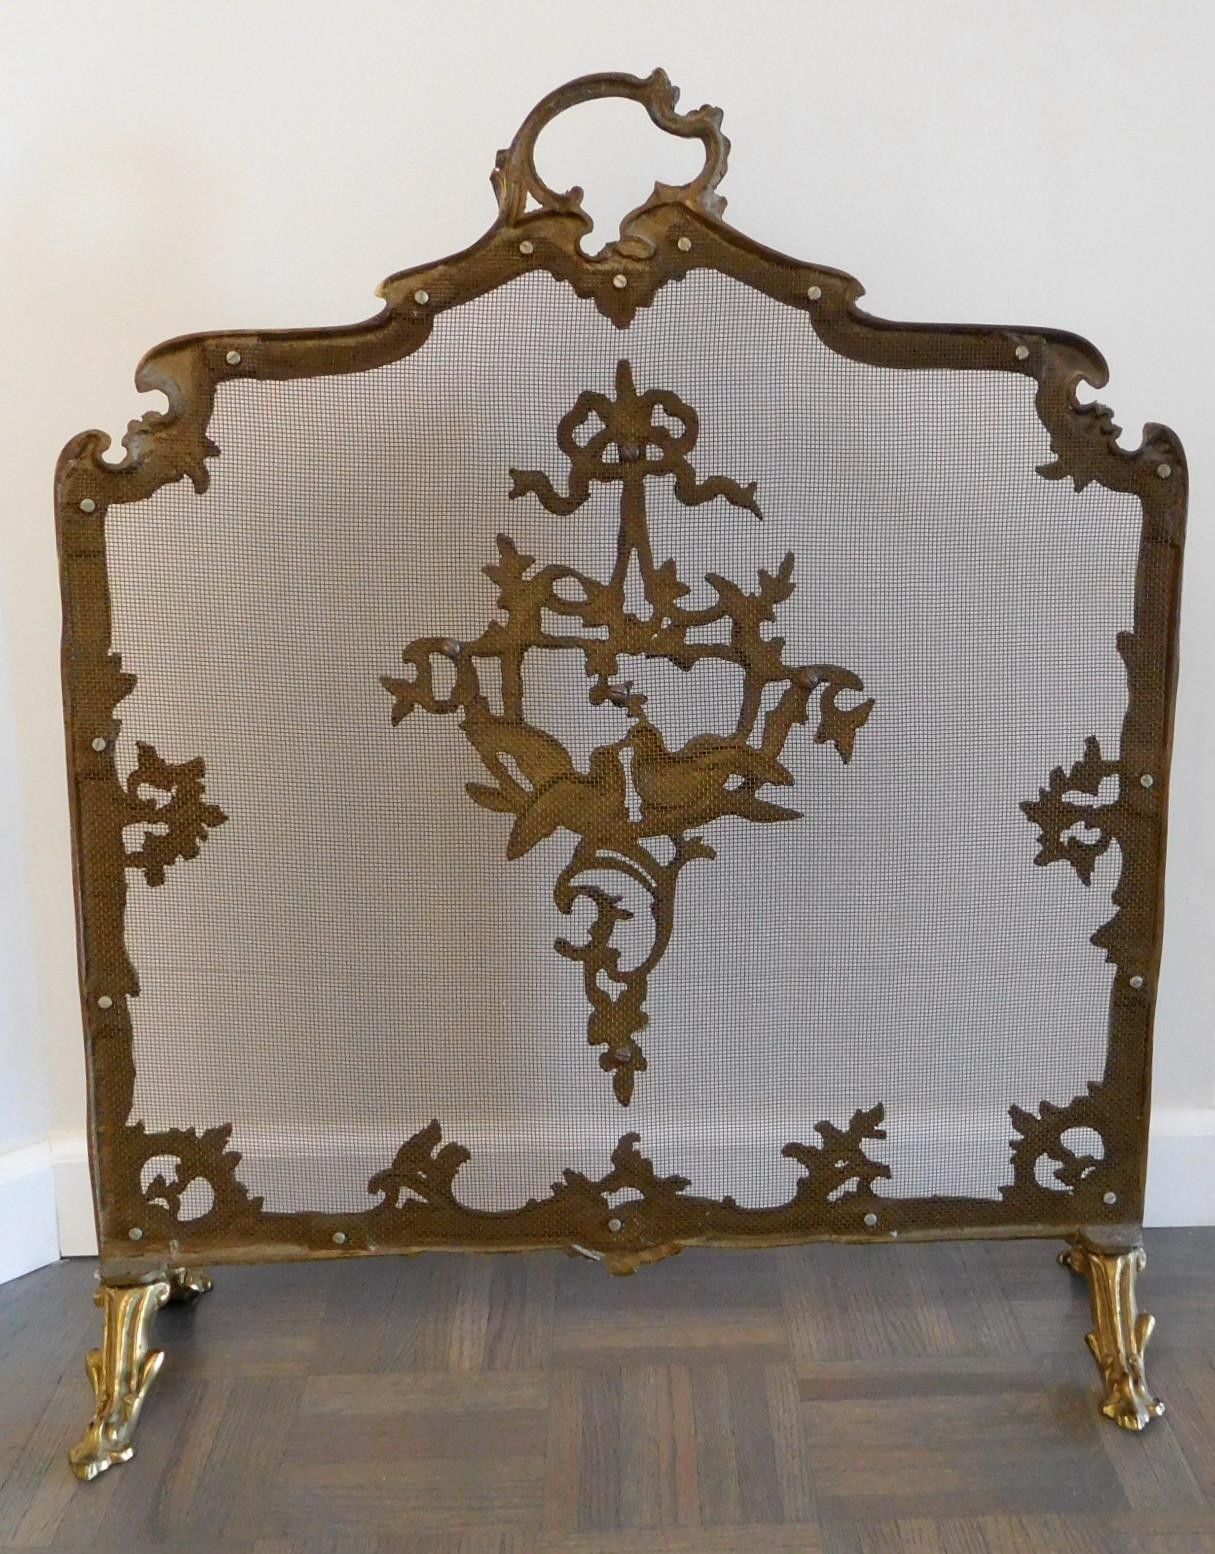 antique footed ormolu fireplace screen with bird accents from the